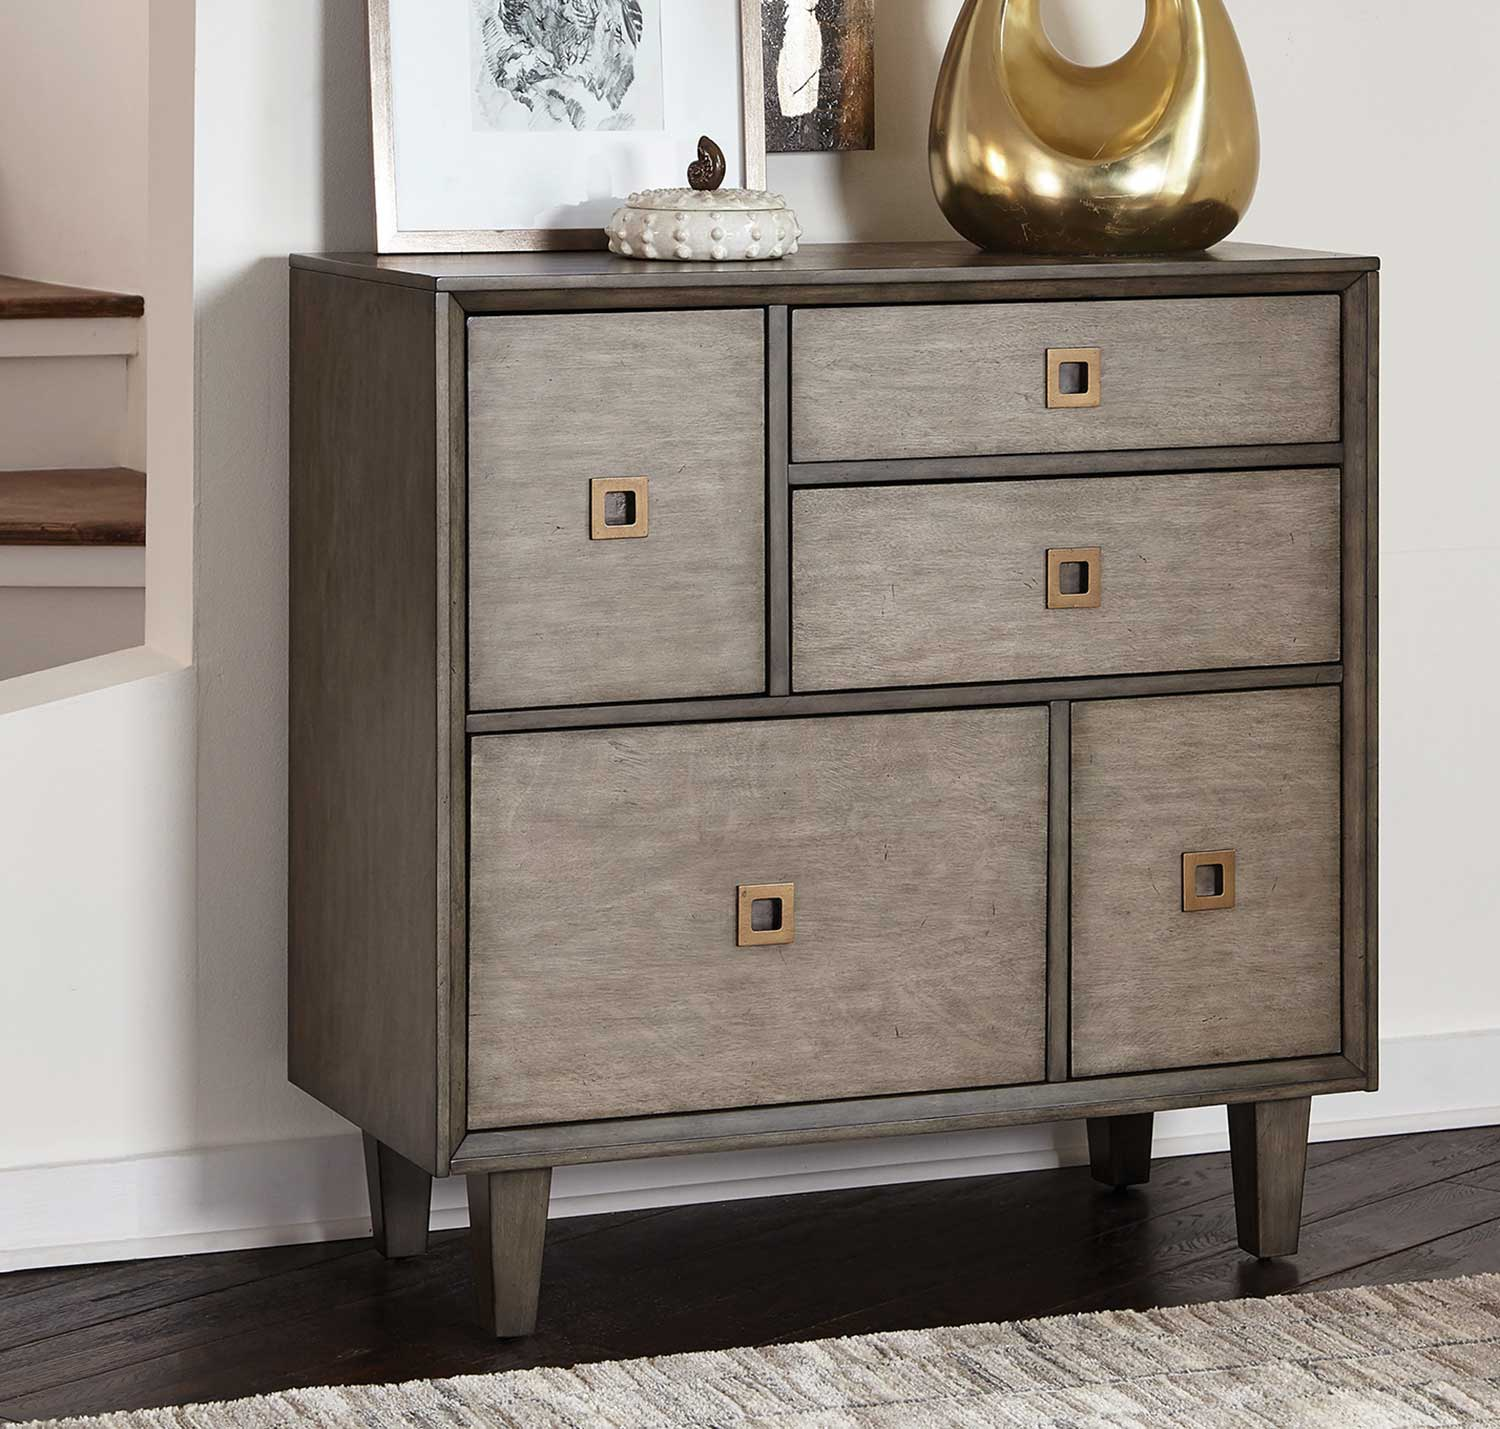 Coaster 950759 Accent Cabinet - Grey/Antique Brass